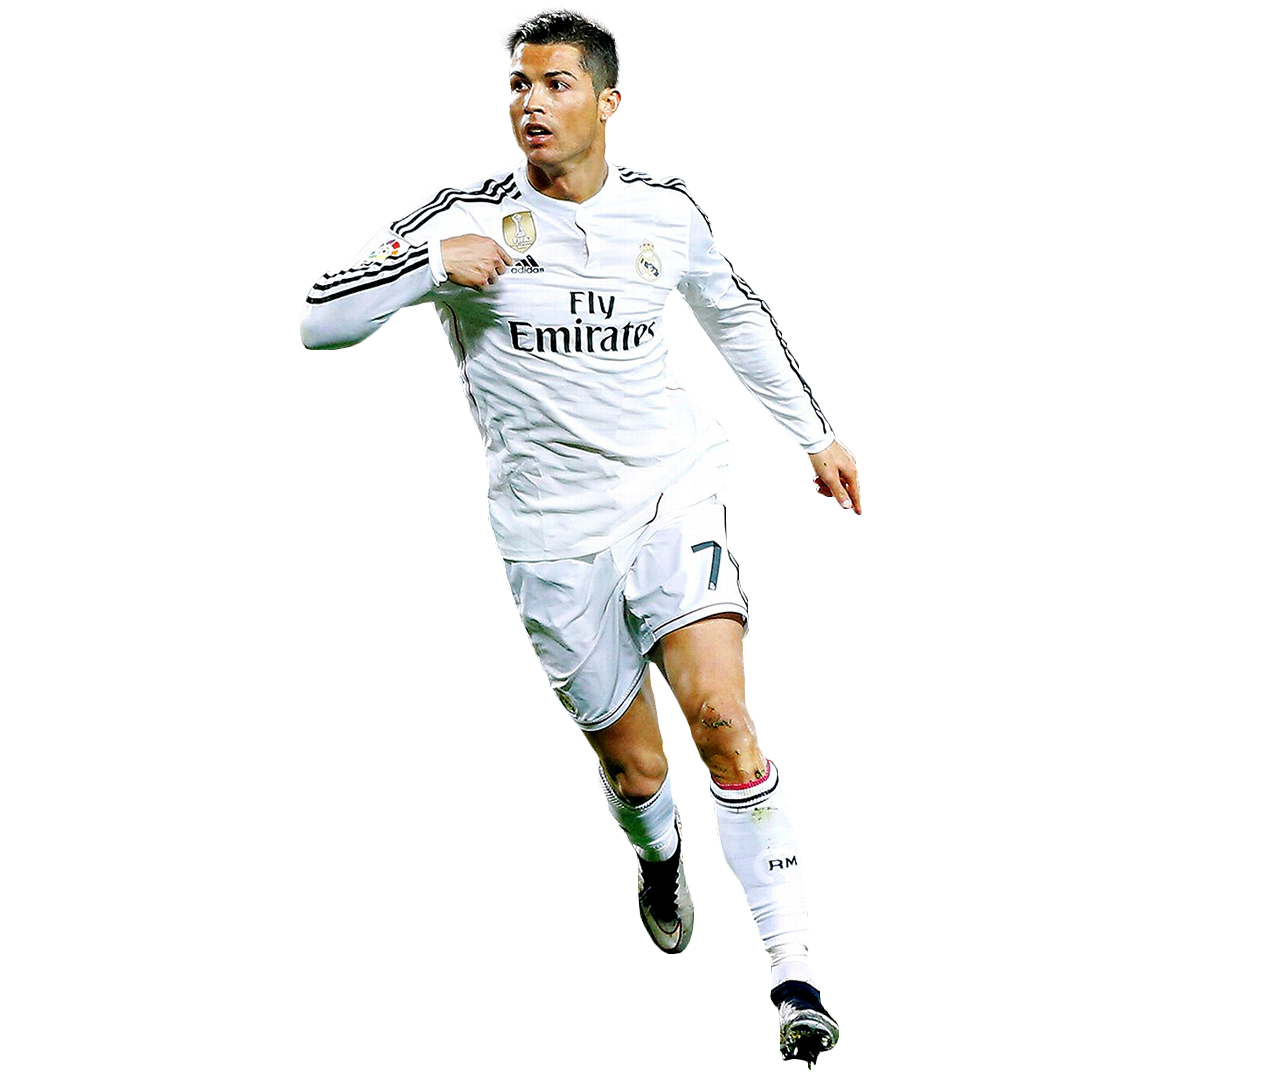 cristiano ronaldo vs barcelona real madrid png clipart football player clipart black and white football player clip art red